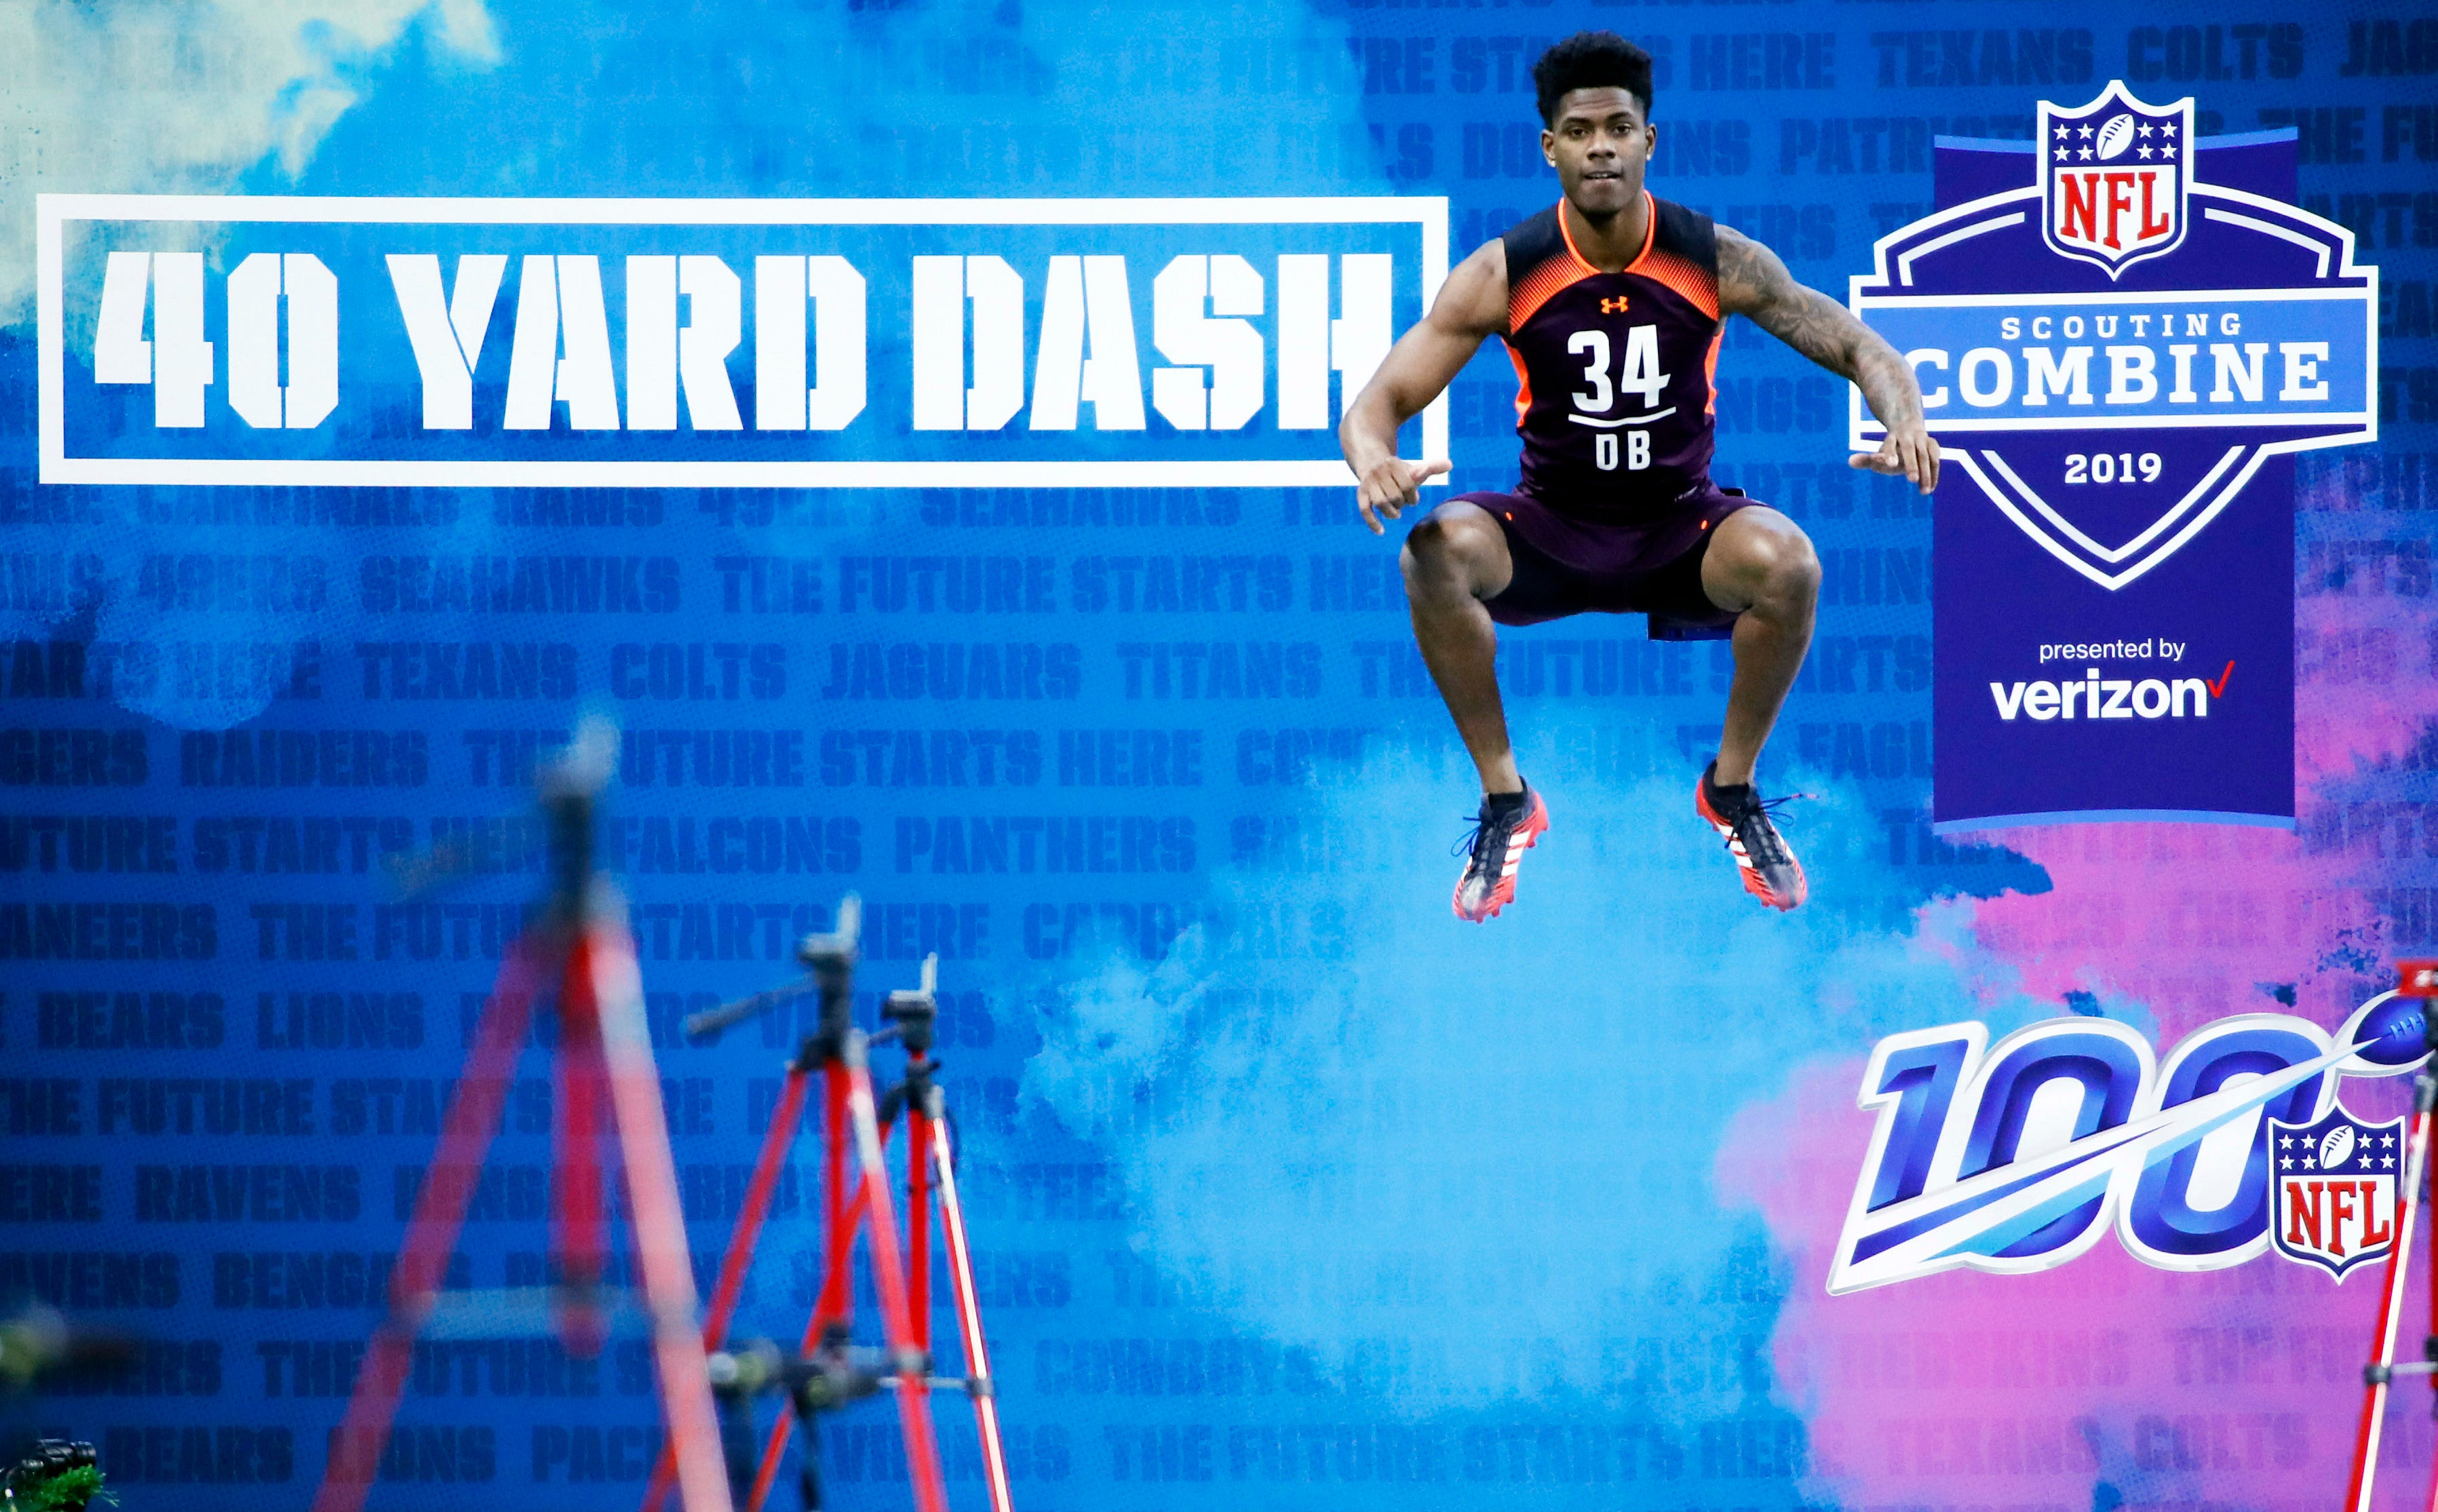 Nfl Combine 2020 Events.Nfl Scouting Combine Drills Shifted To Afternoon And Prime Time